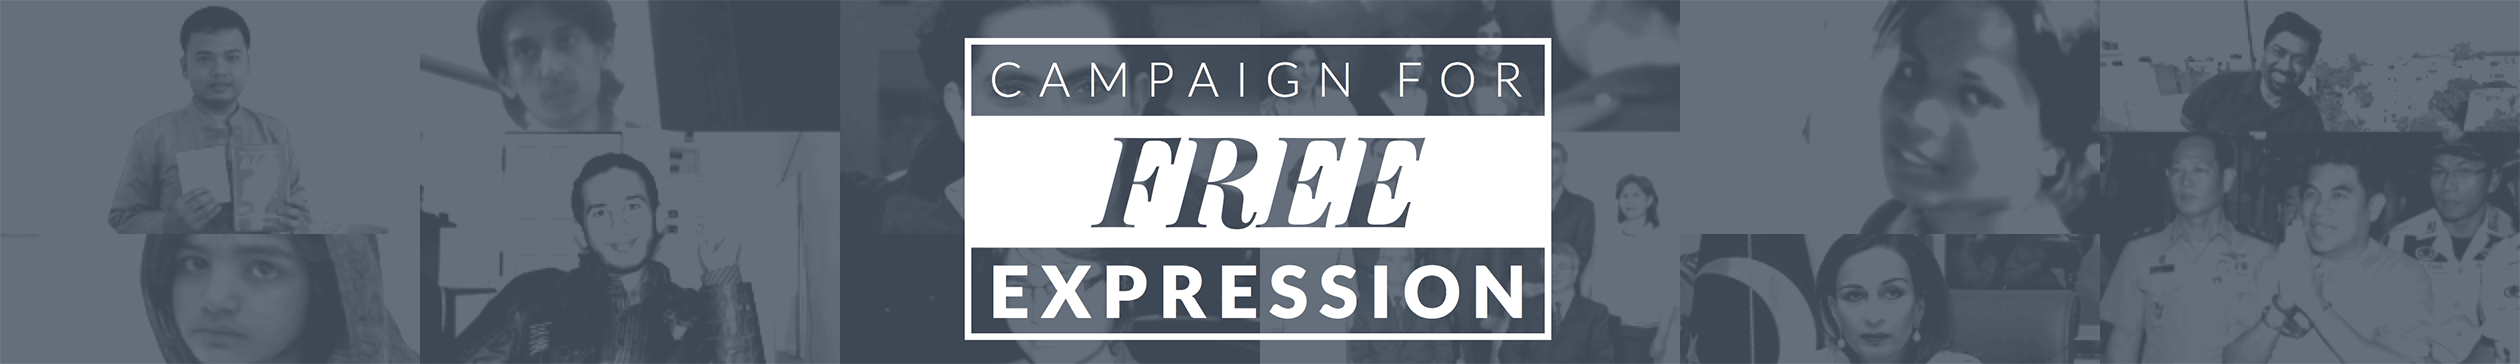 Campaign for Free Expression